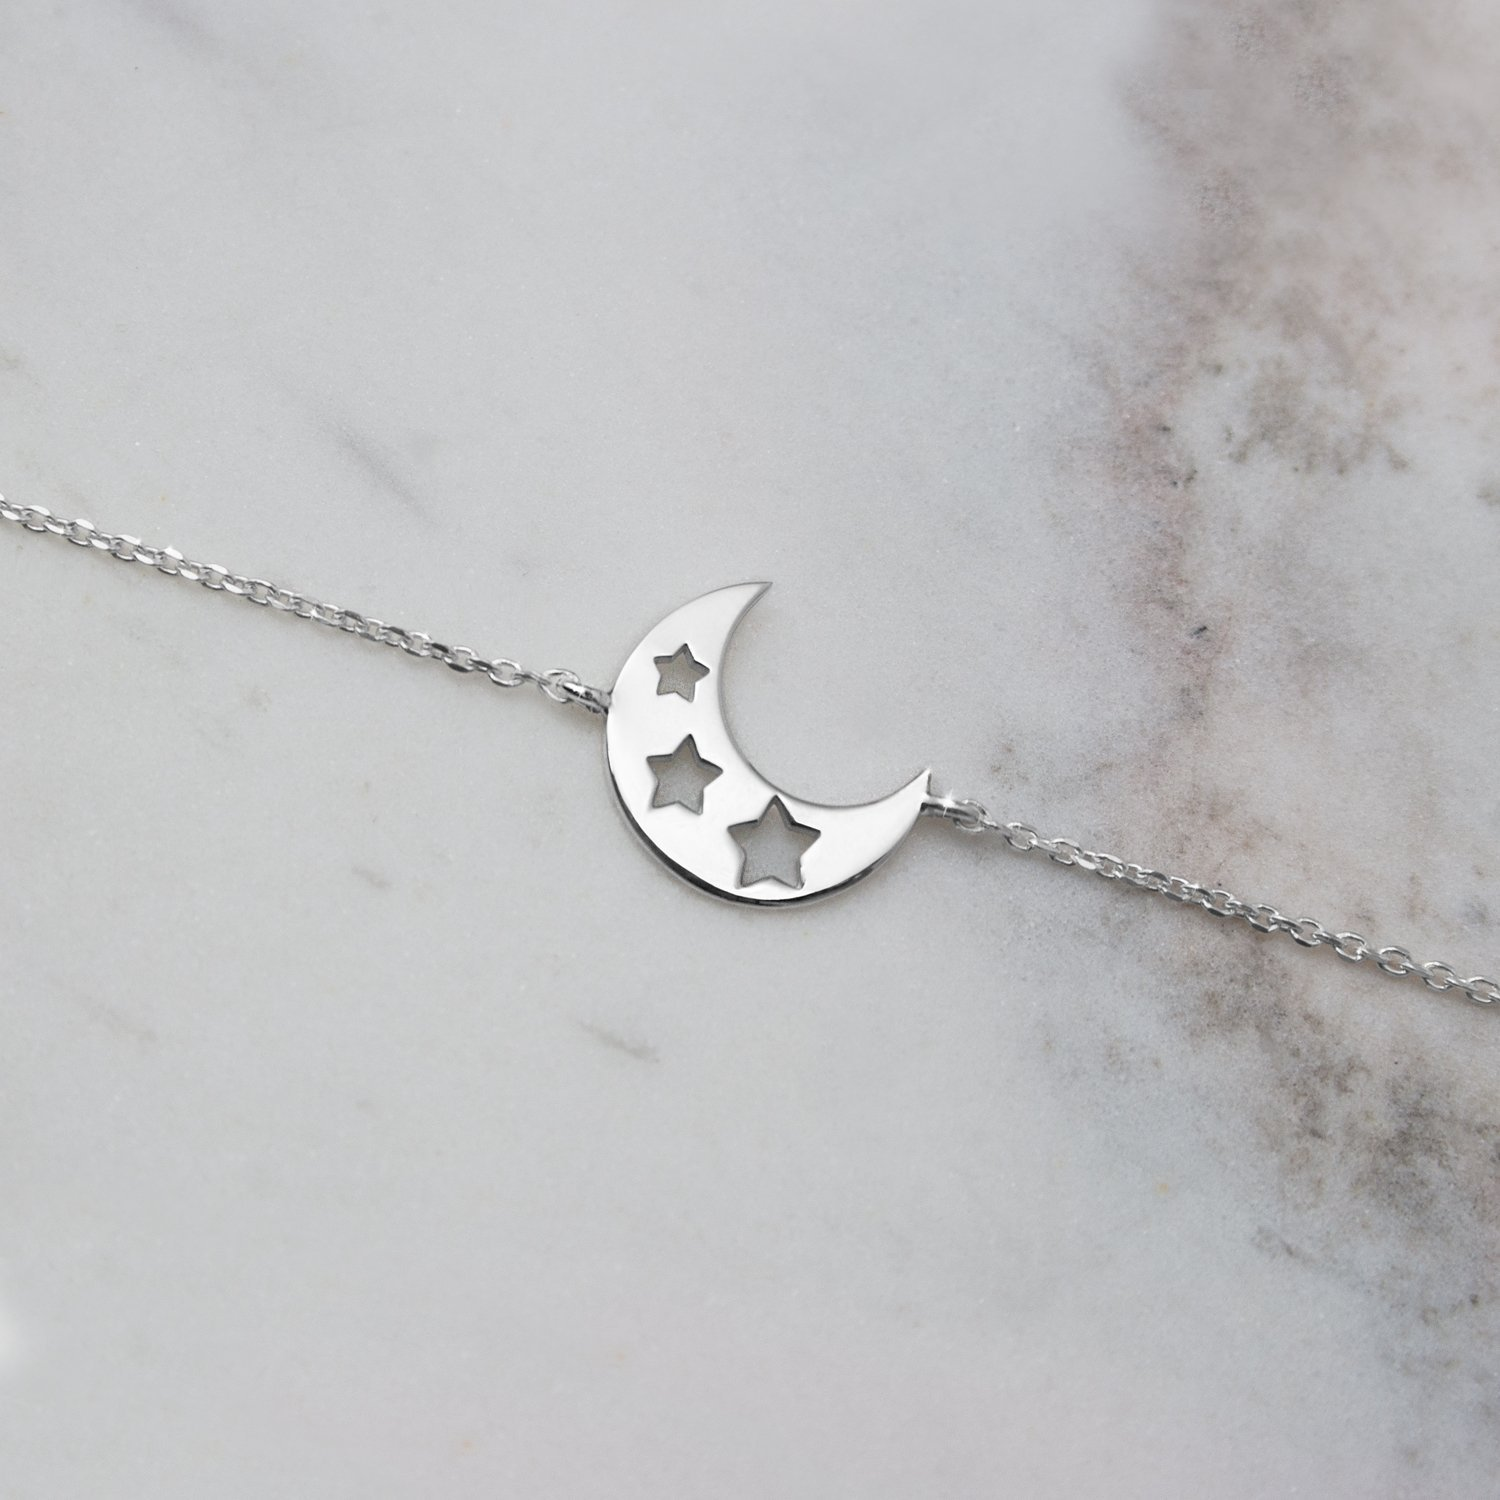 Crescent Moon Bracelet, 9K, 14K, 18K White Gold, Moon Star Charm Bracelet, White Gold Moon With Stars